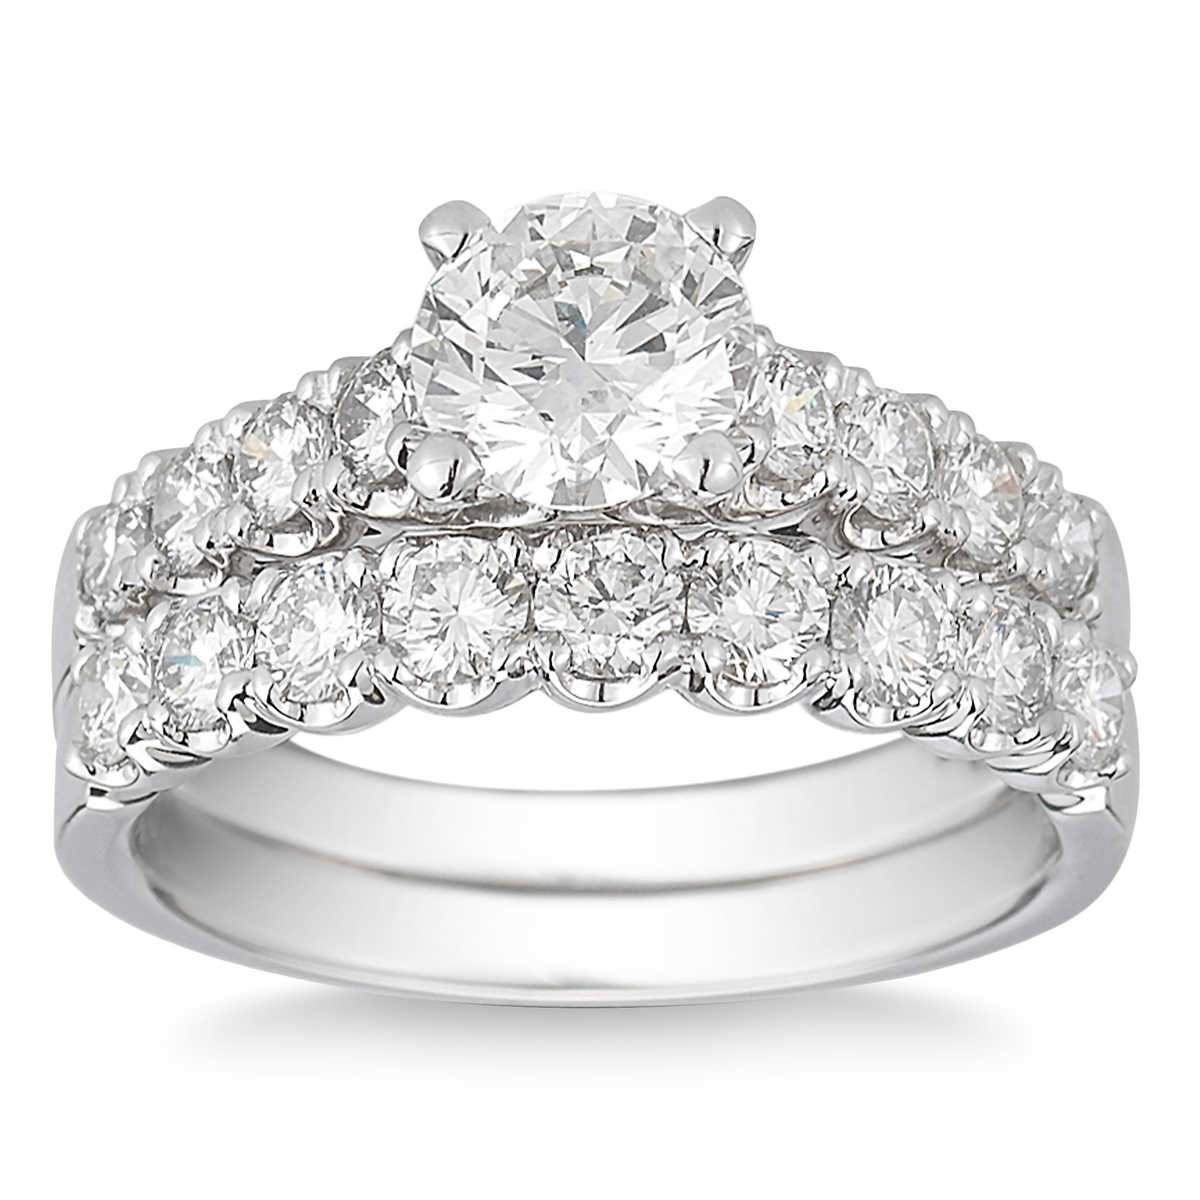 Round Brilliant 210 Ctw Vs2 Clarity, I Color Diamond Platinum Wedding Set